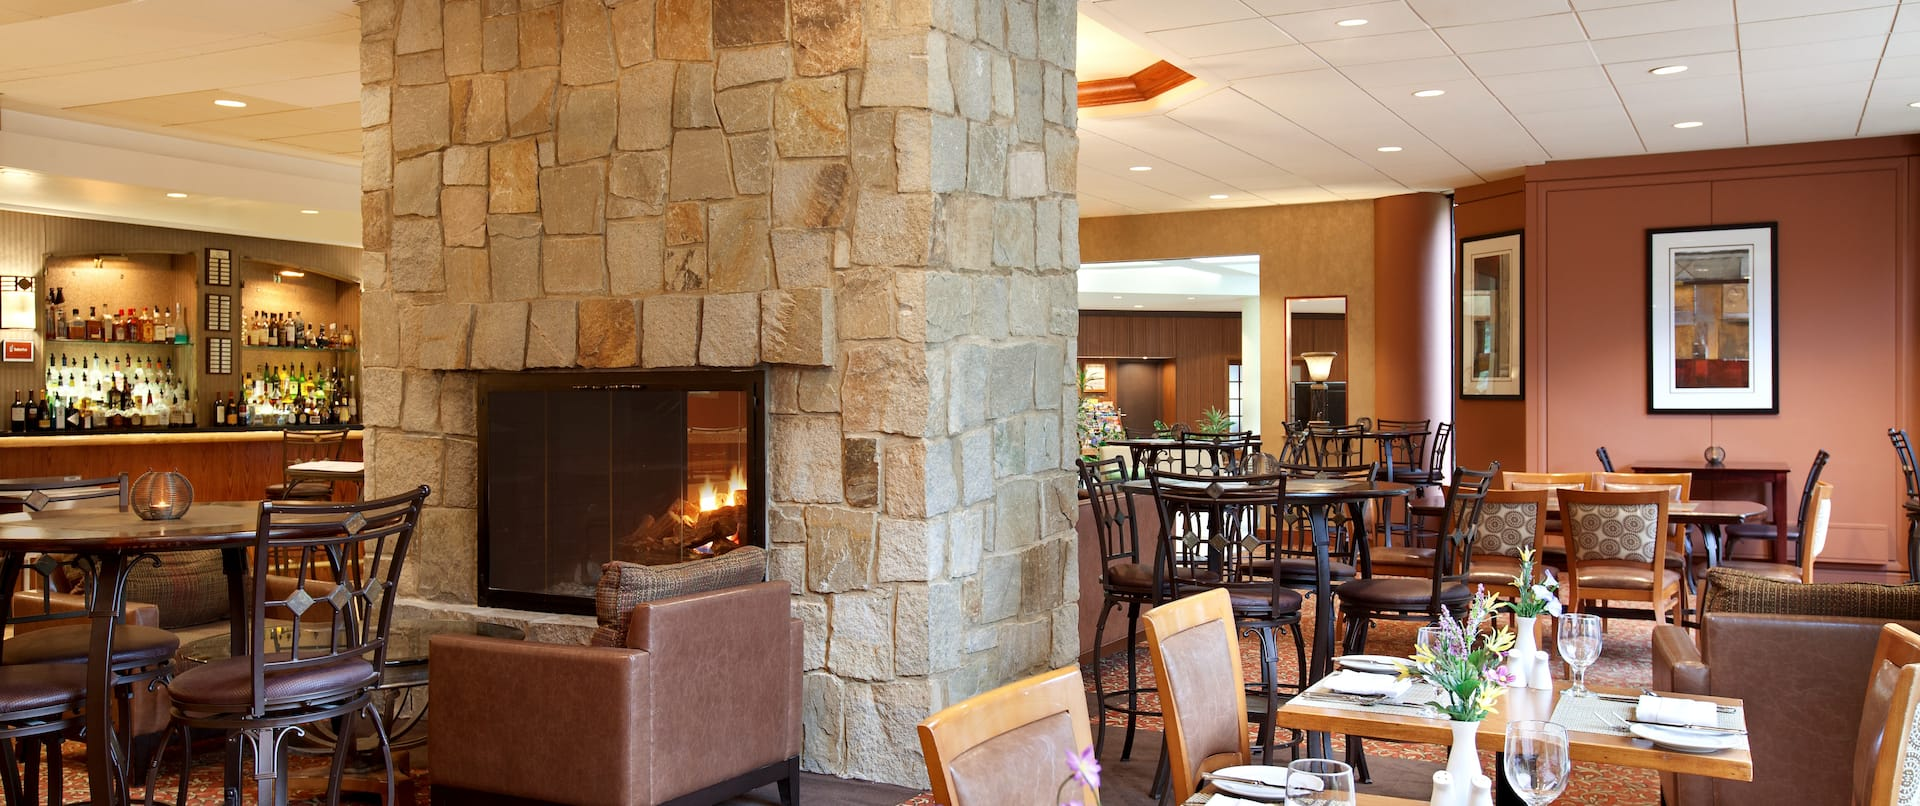 Tables, Chairs, Fireplace, and Fully Stocked Bar in SORA Restaurant